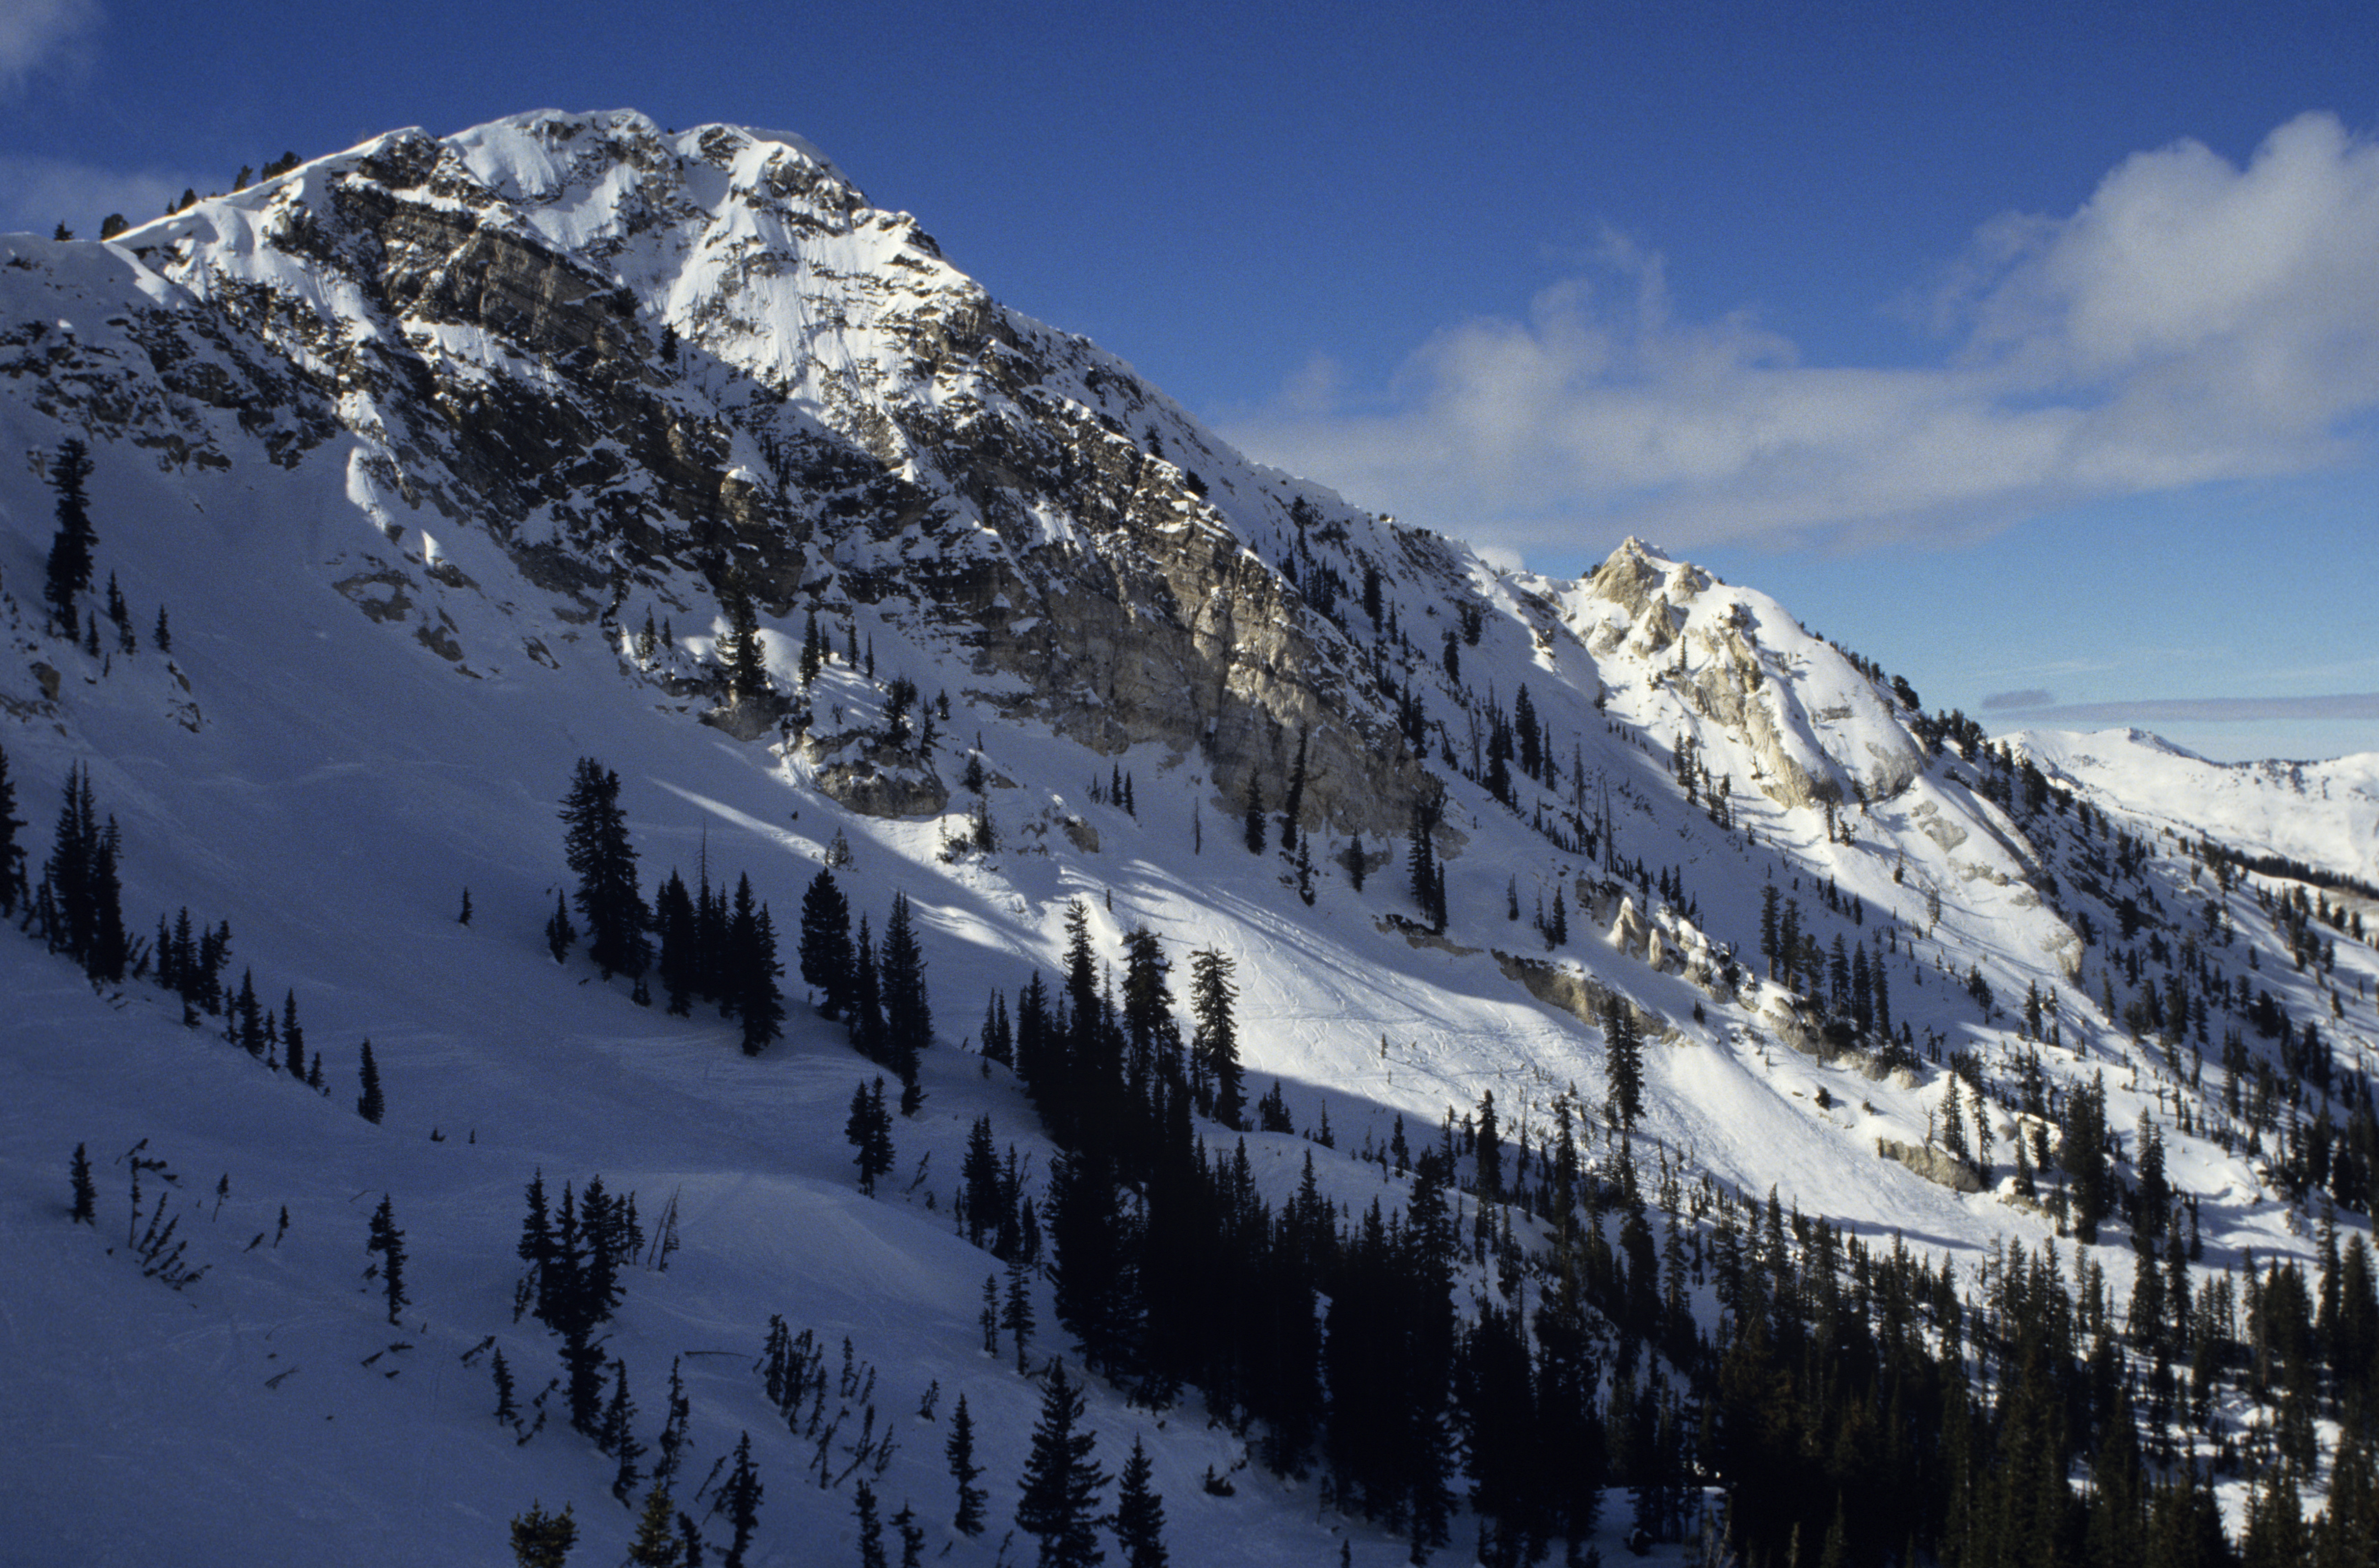 Snowy Utah is excellent for skiing